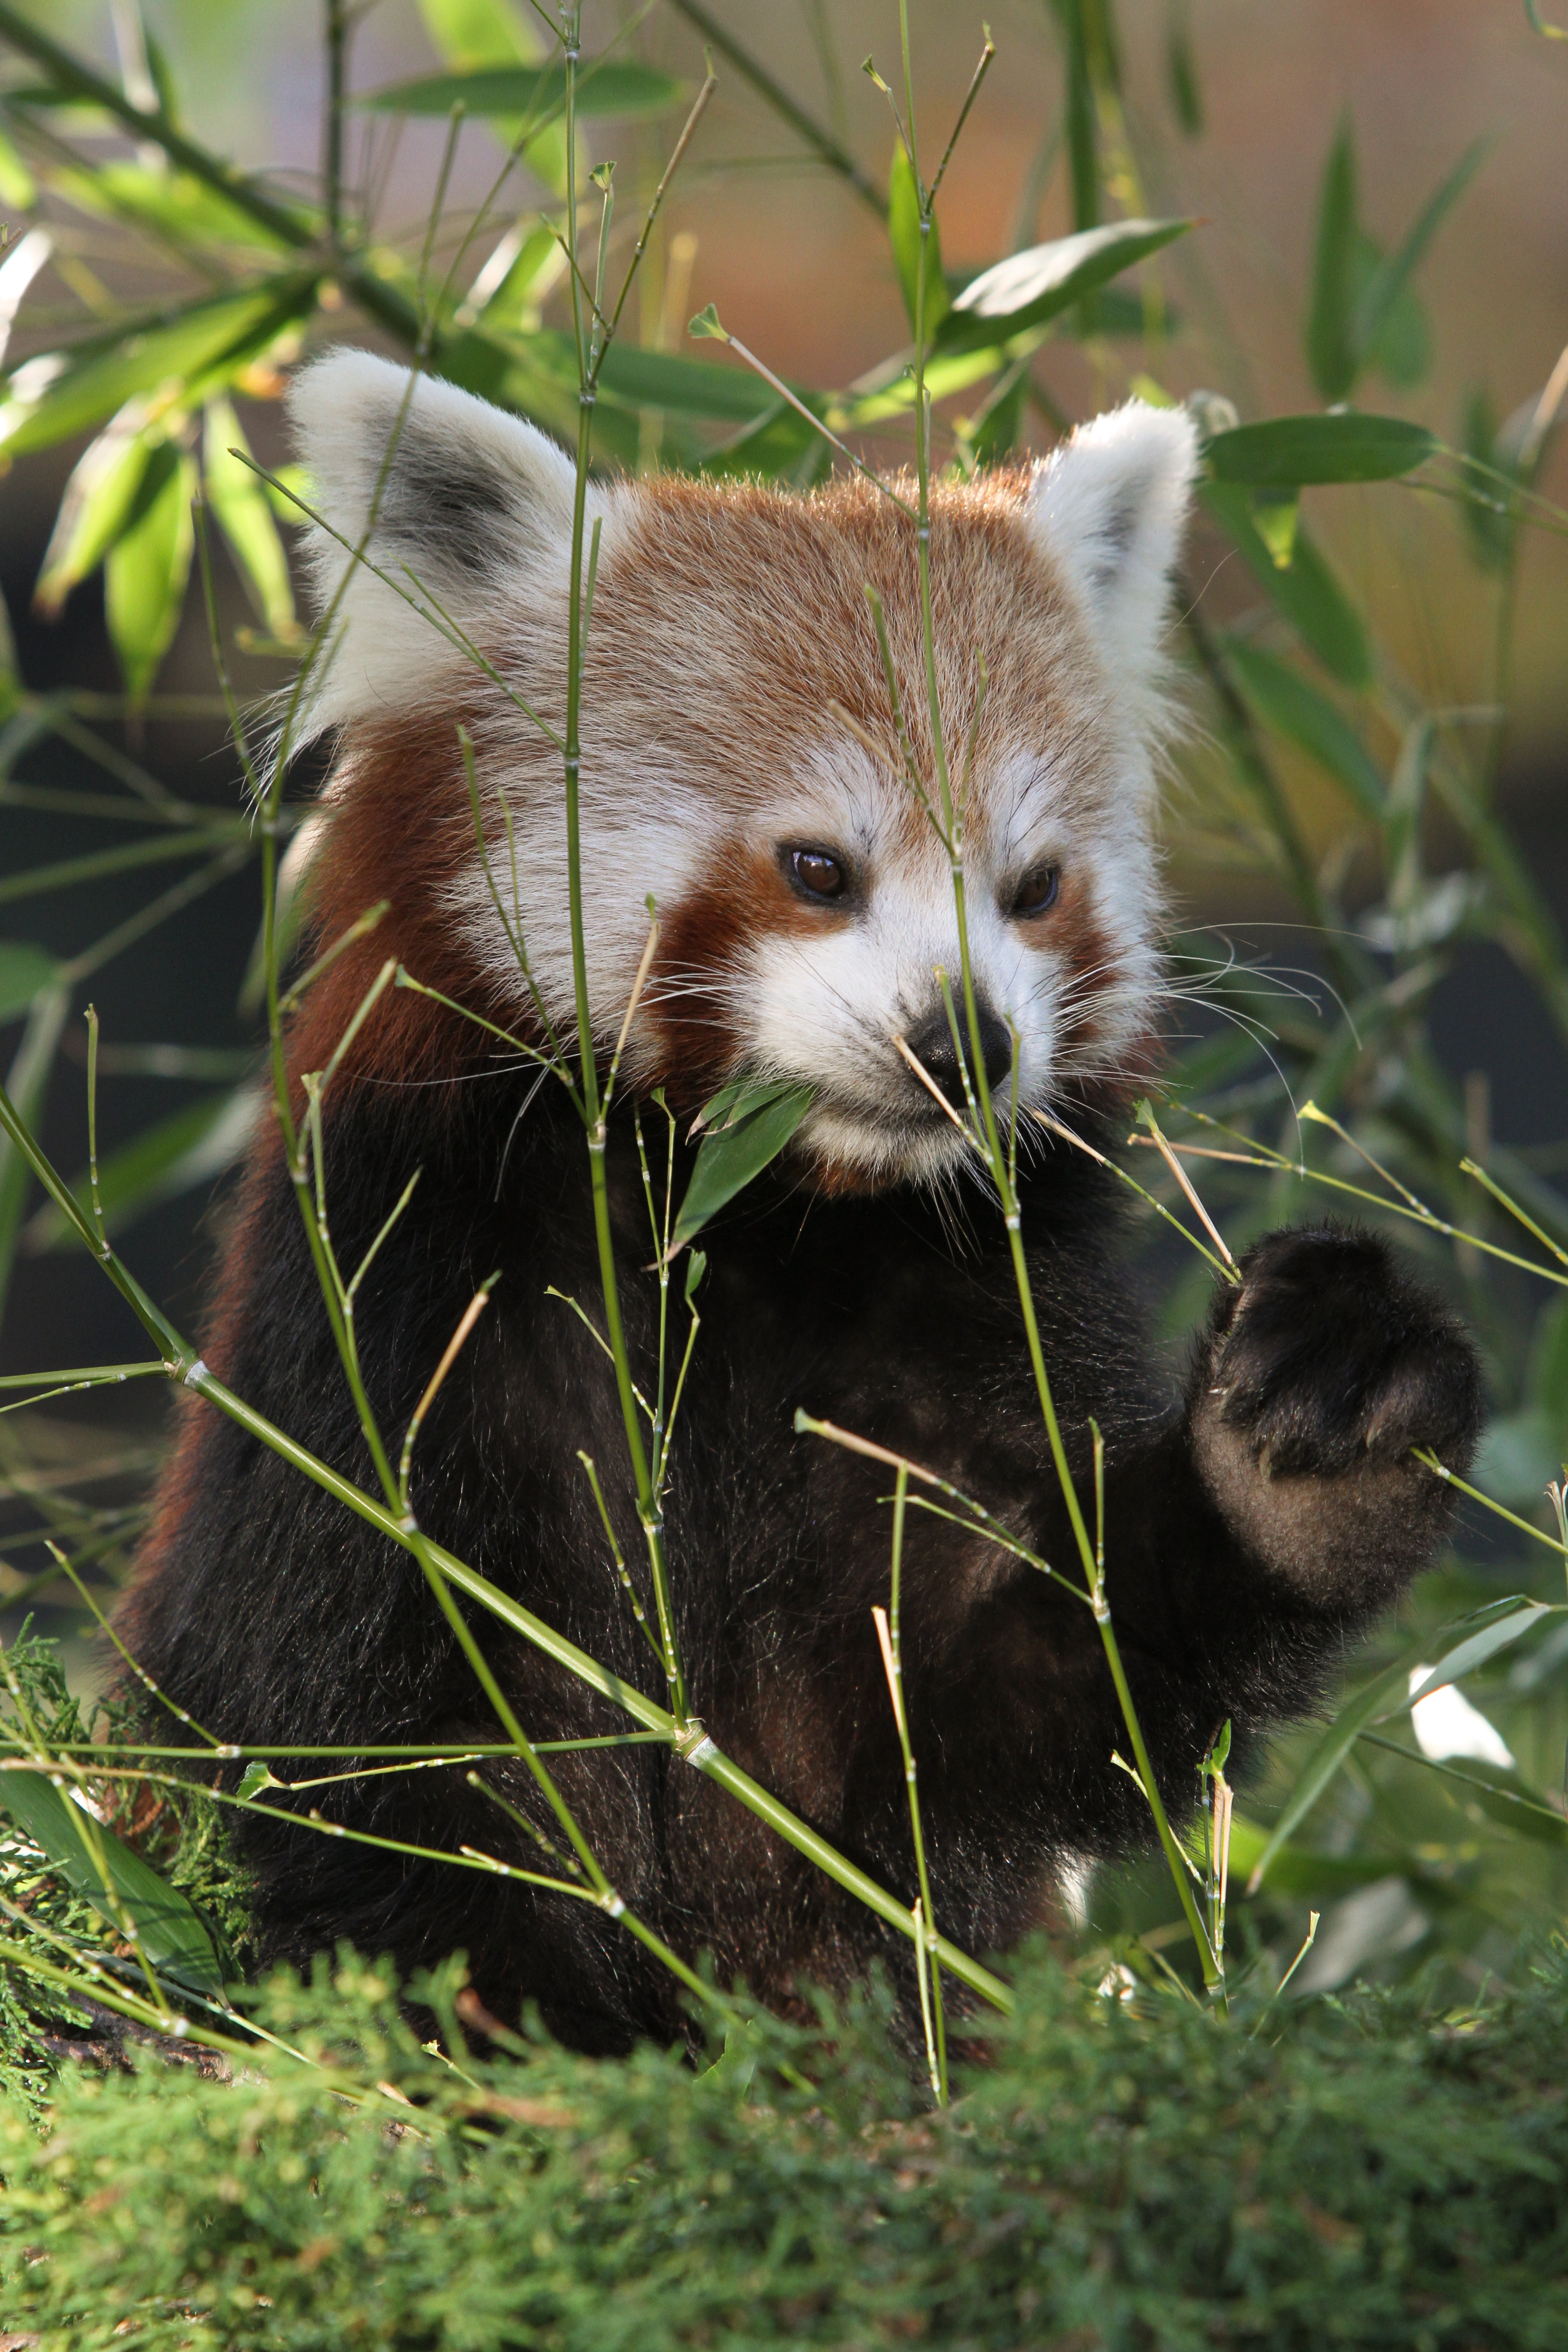 95052 download wallpaper Animals, Red Panda, Panda, Nice, Sweetheart, Grass screensavers and pictures for free